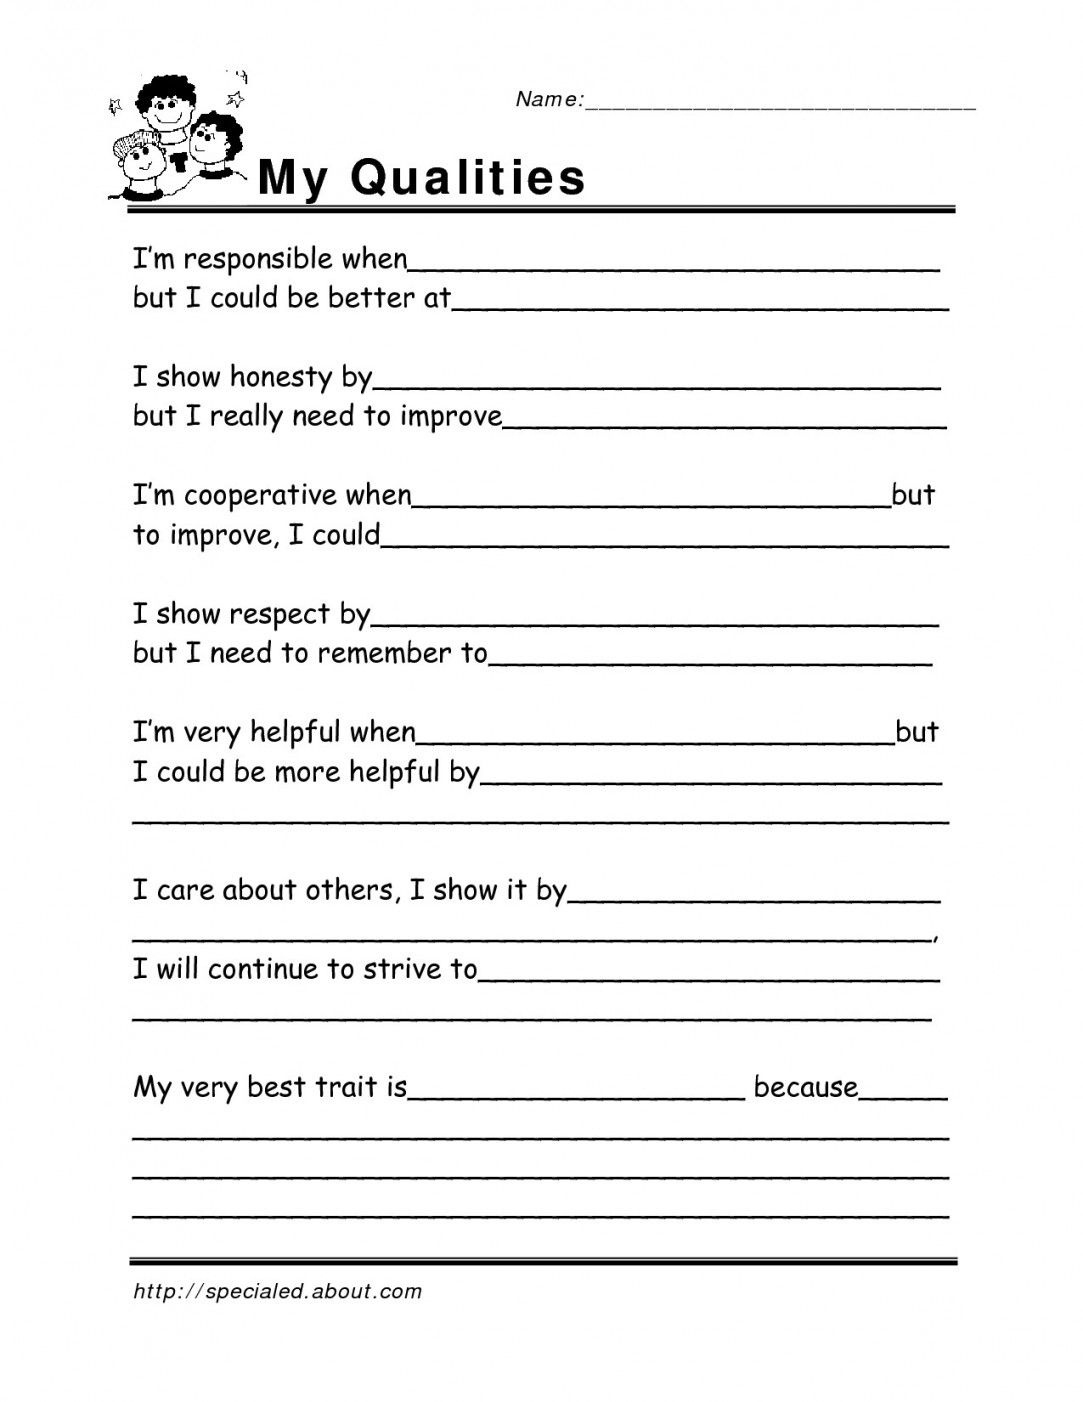 Free Printable Coping Skills Worksheets | Lostranquillos - Free - Free Printable Coping Skills Worksheets